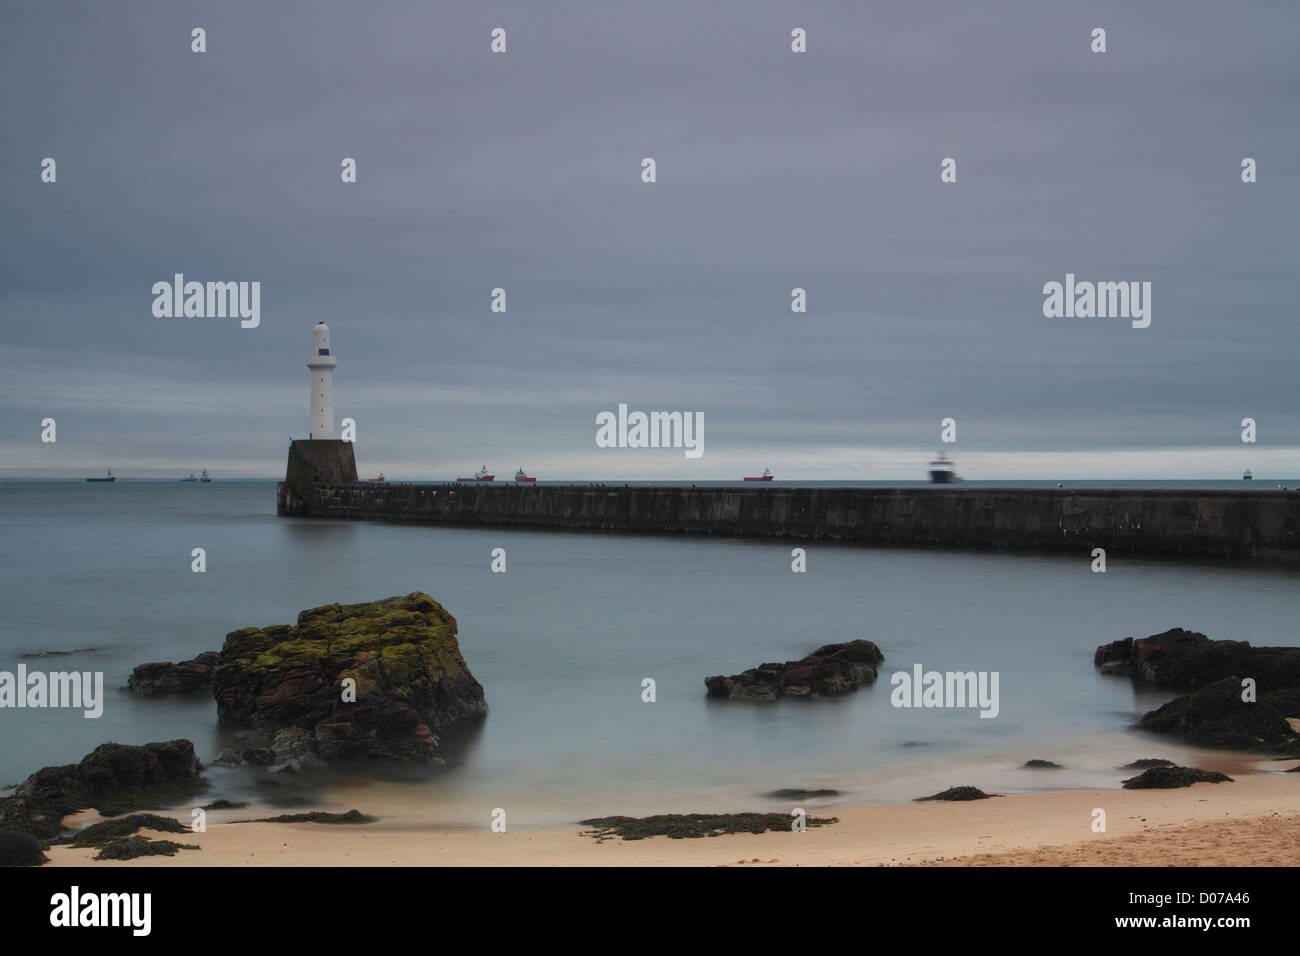 Torry Battery Lighthouse and the North Sea, Aberdeen - Stock Image